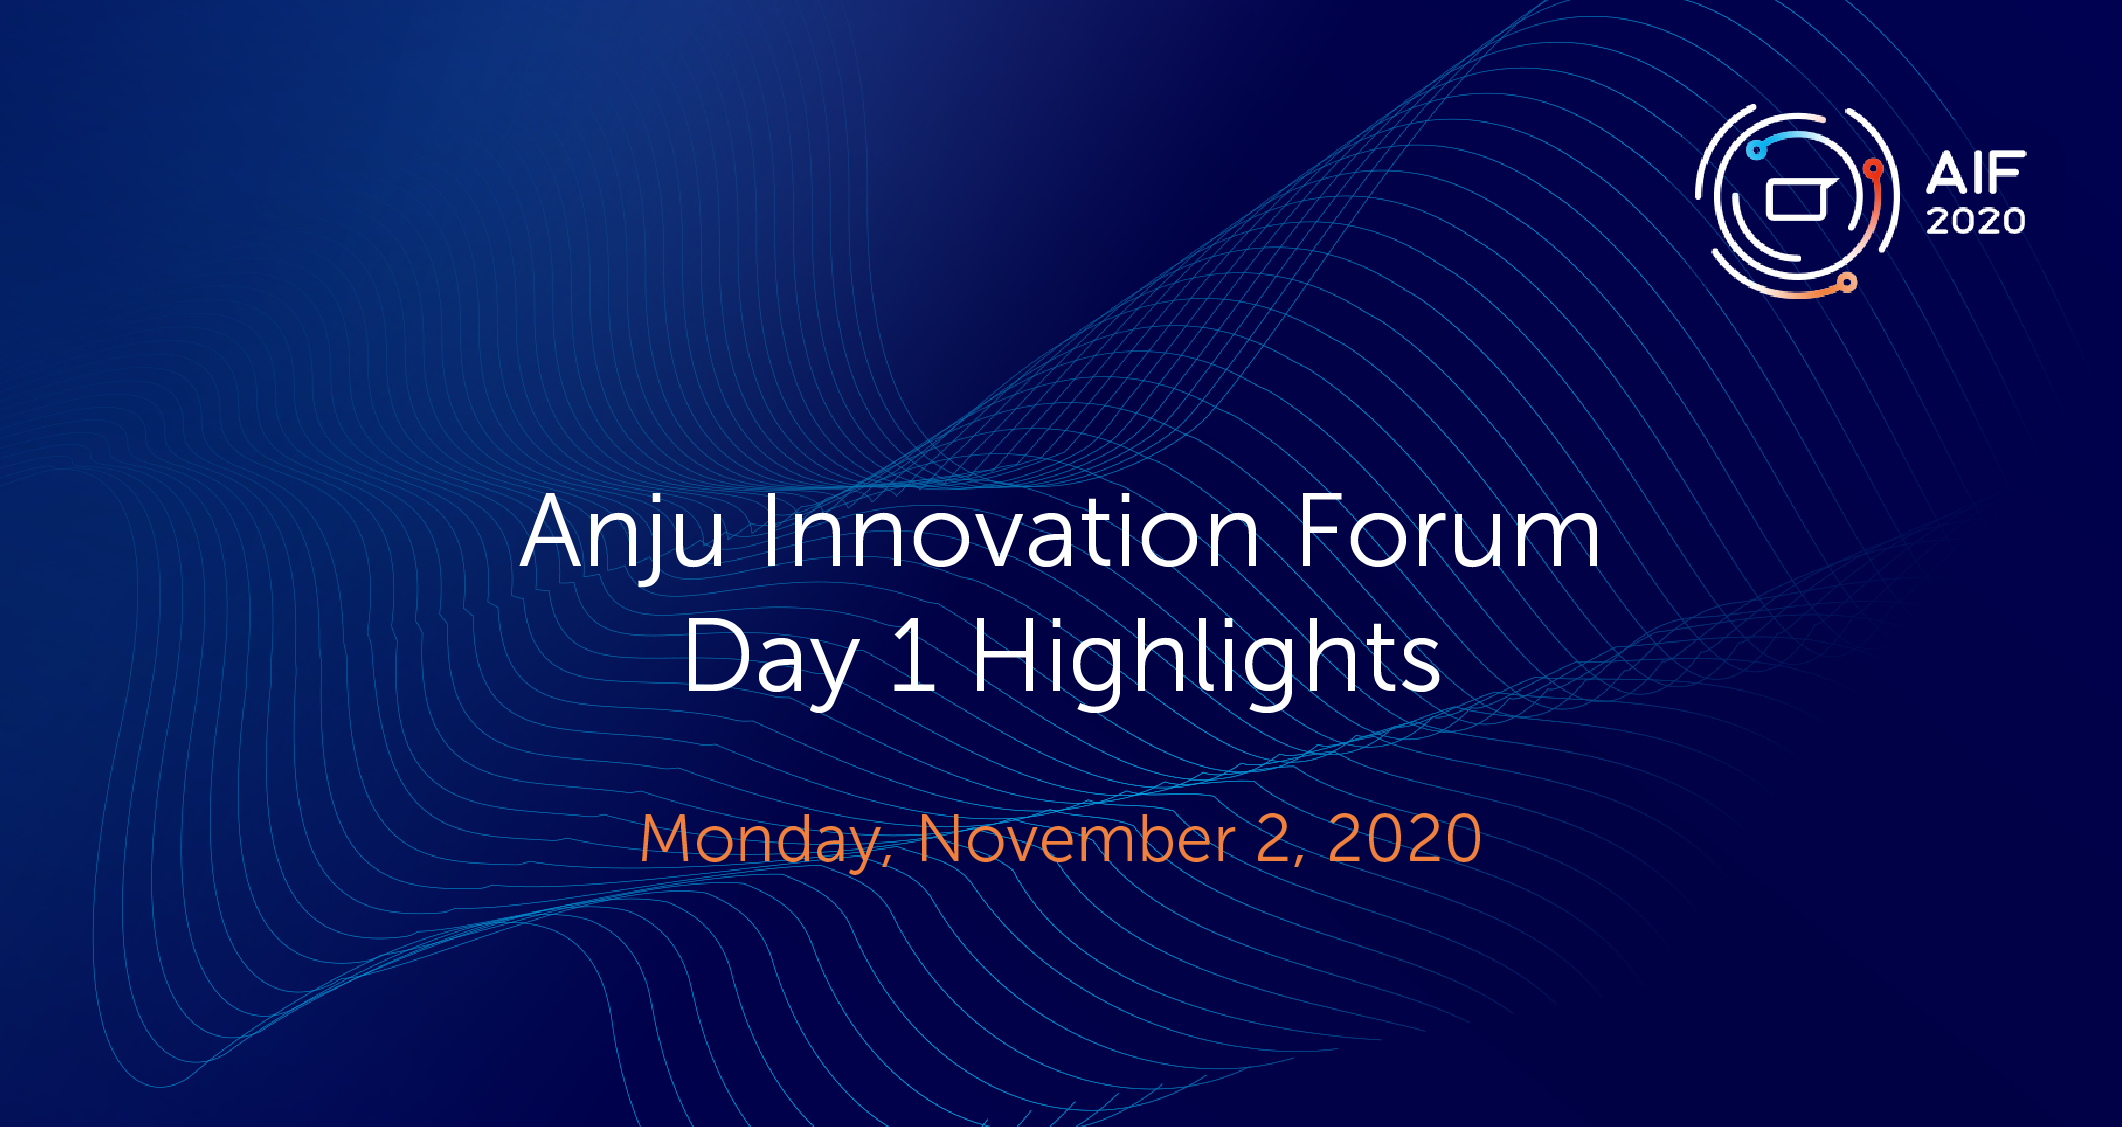 Anju Innovation Forum Day 1 Highlights